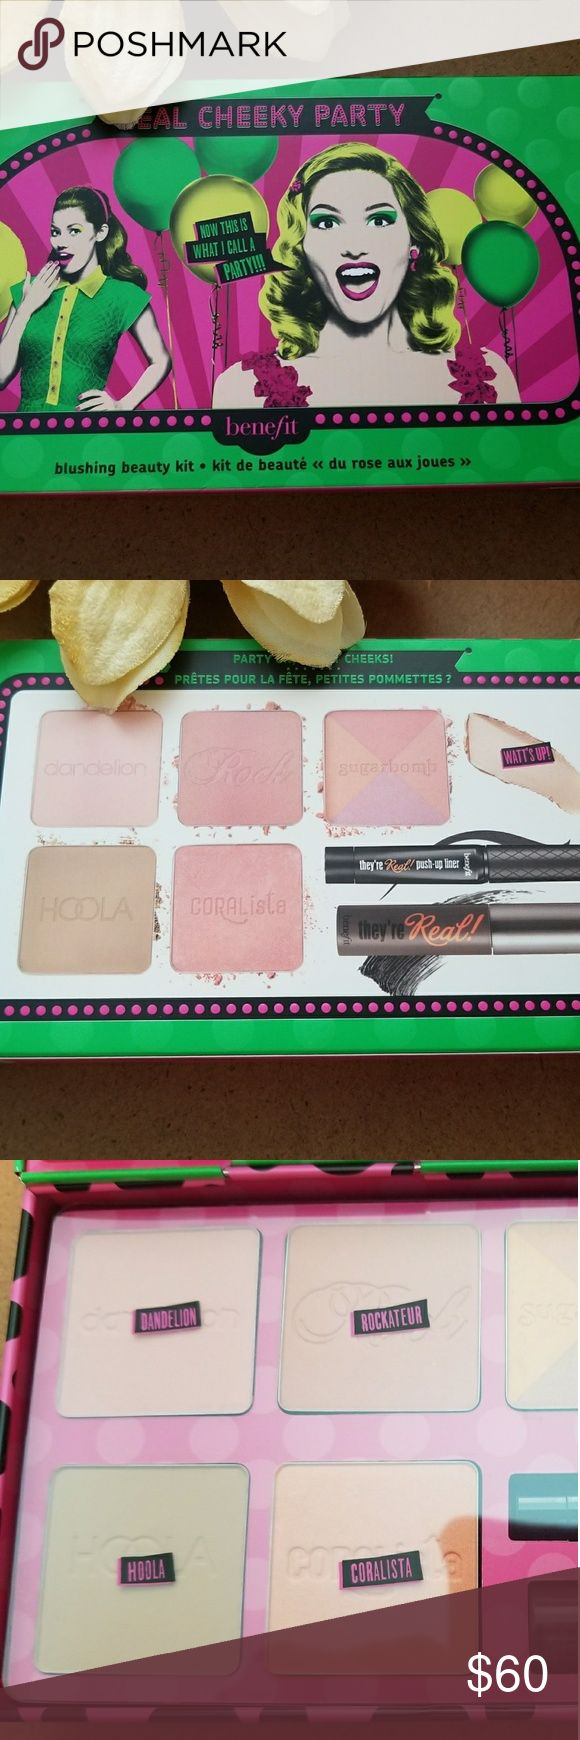 """Benefit Real Cheeky Party Mascara Liner Blush NIB Authentic Benefit """"Real Cheeky Party"""". Includes They're Real Mascara, push-up Liner & 5 Blushes & limited edition tin! NIB. Never used or tested!! Benefit Makeup"""